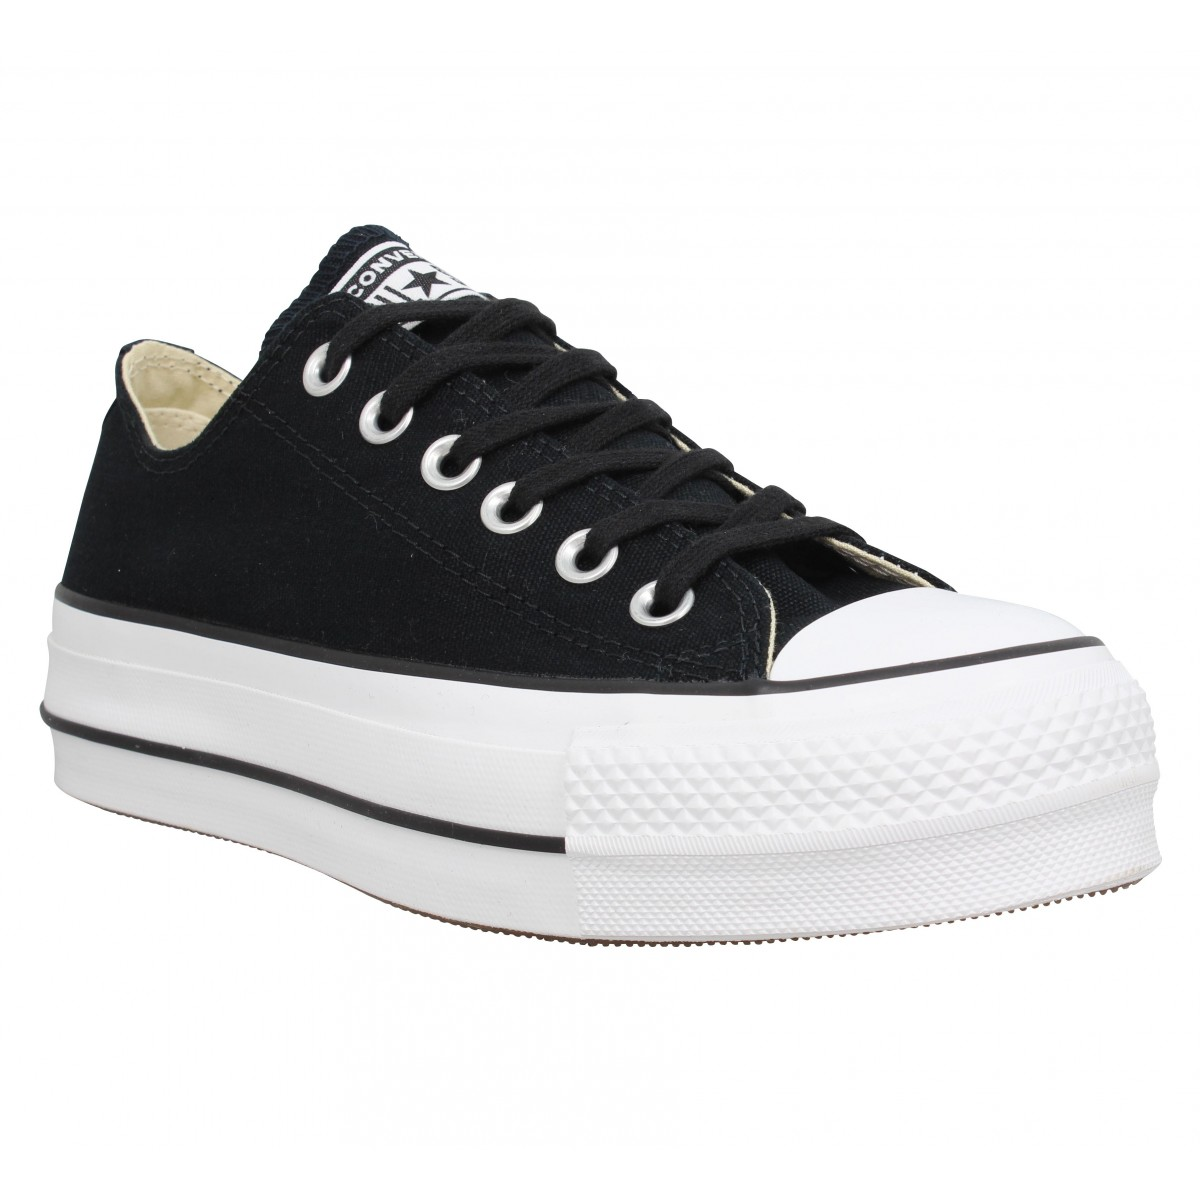 CONVERSE Chuck Taylor All Star Lift toile Femme Noir